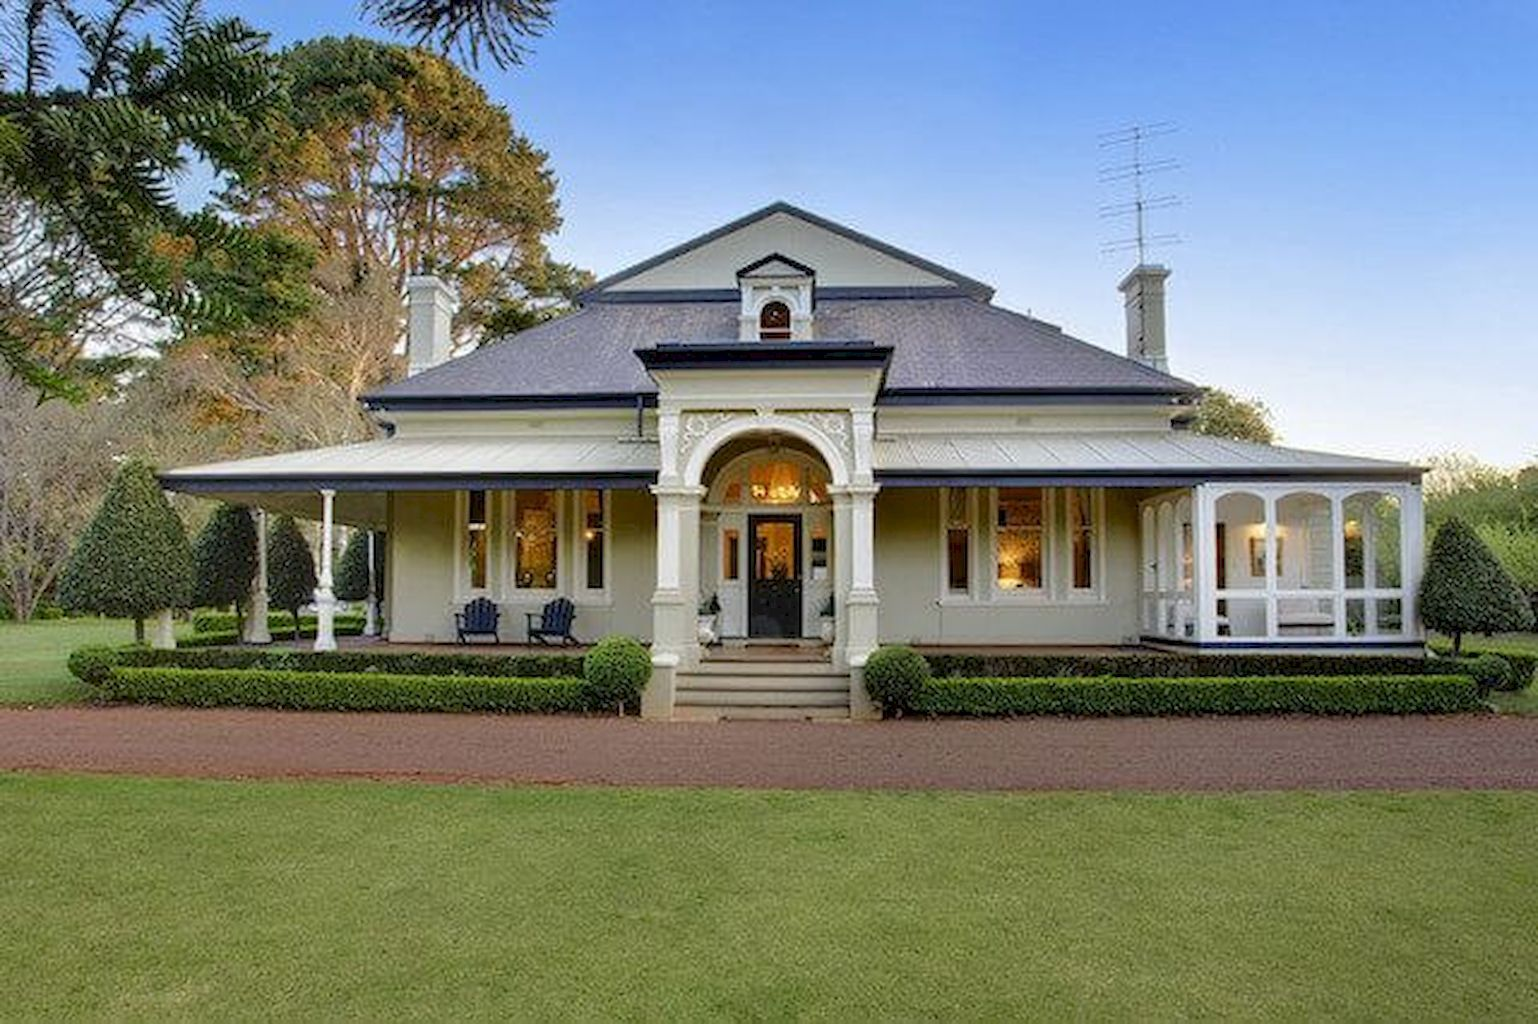 Nice 60 Stunning Australian Farmhouse Style Design Ideas Https Roomadness Com 2017 12 15 60 Stunning Austral Facade House Country House Decor Farmhouse Style